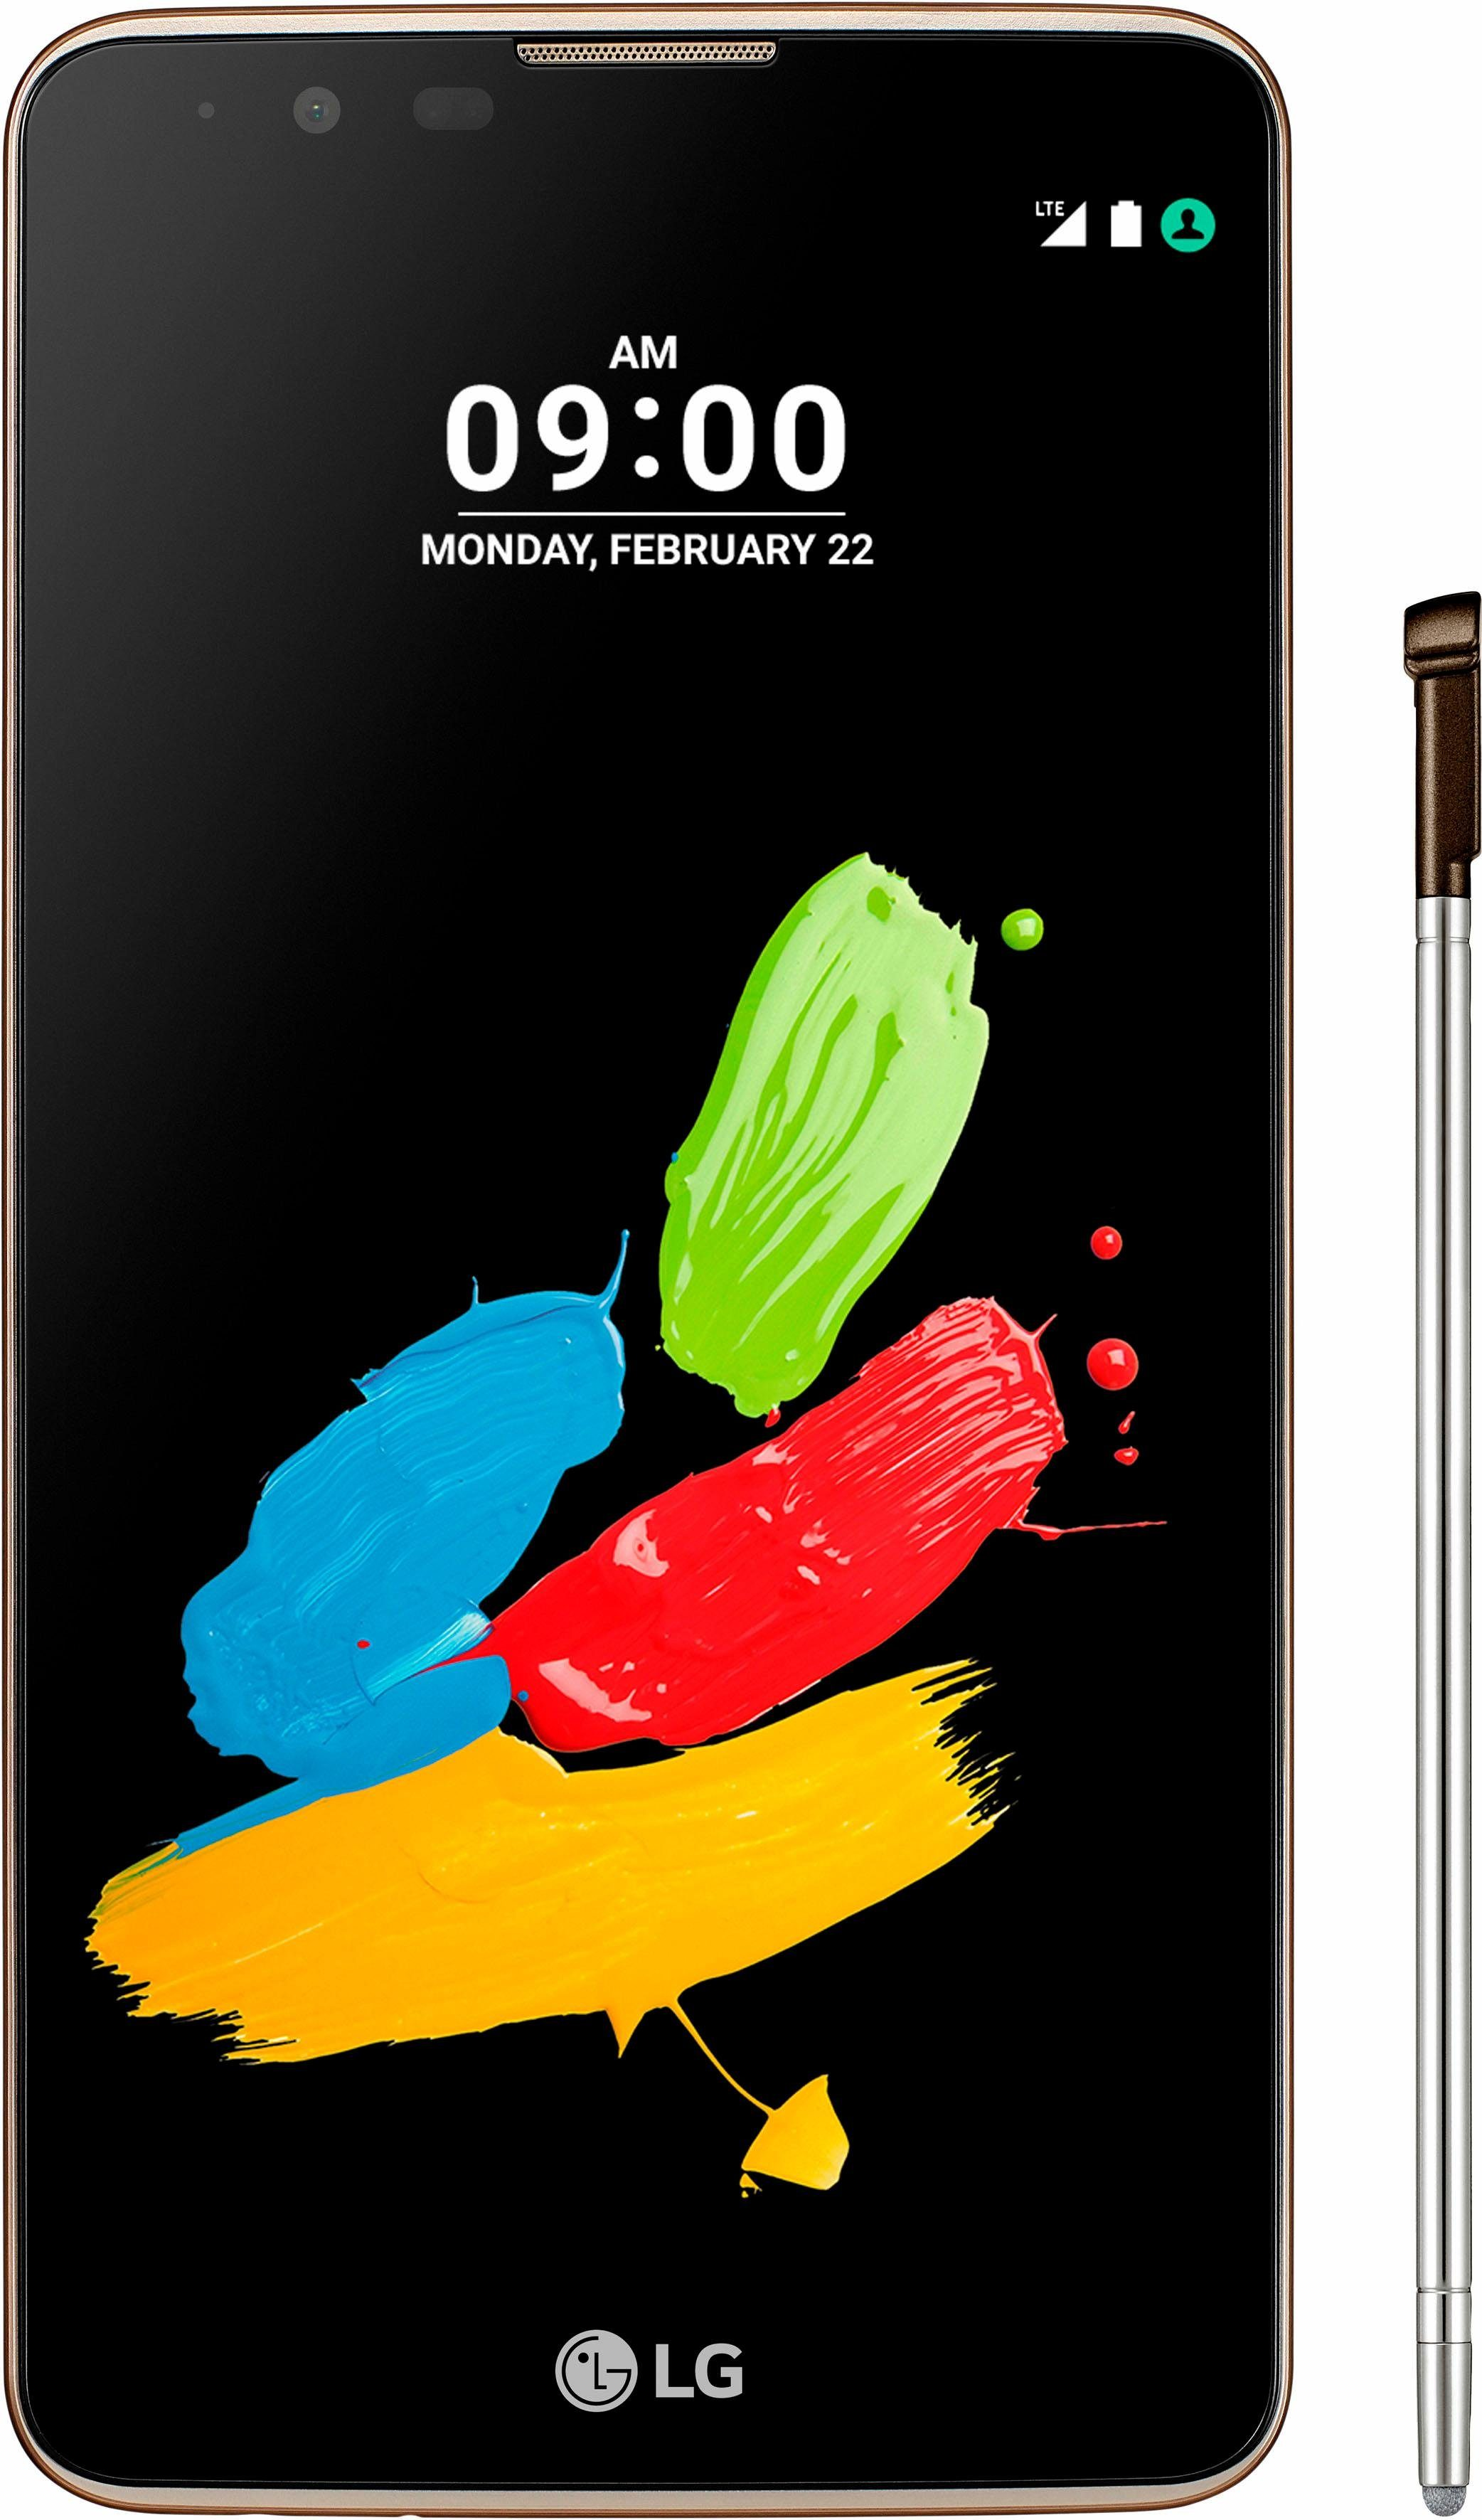 LG Stylus 2 Smartphone, 14,5 cm (5,7 Zoll) Display, LTE (4G), Android 6.0 (Marshmallow)